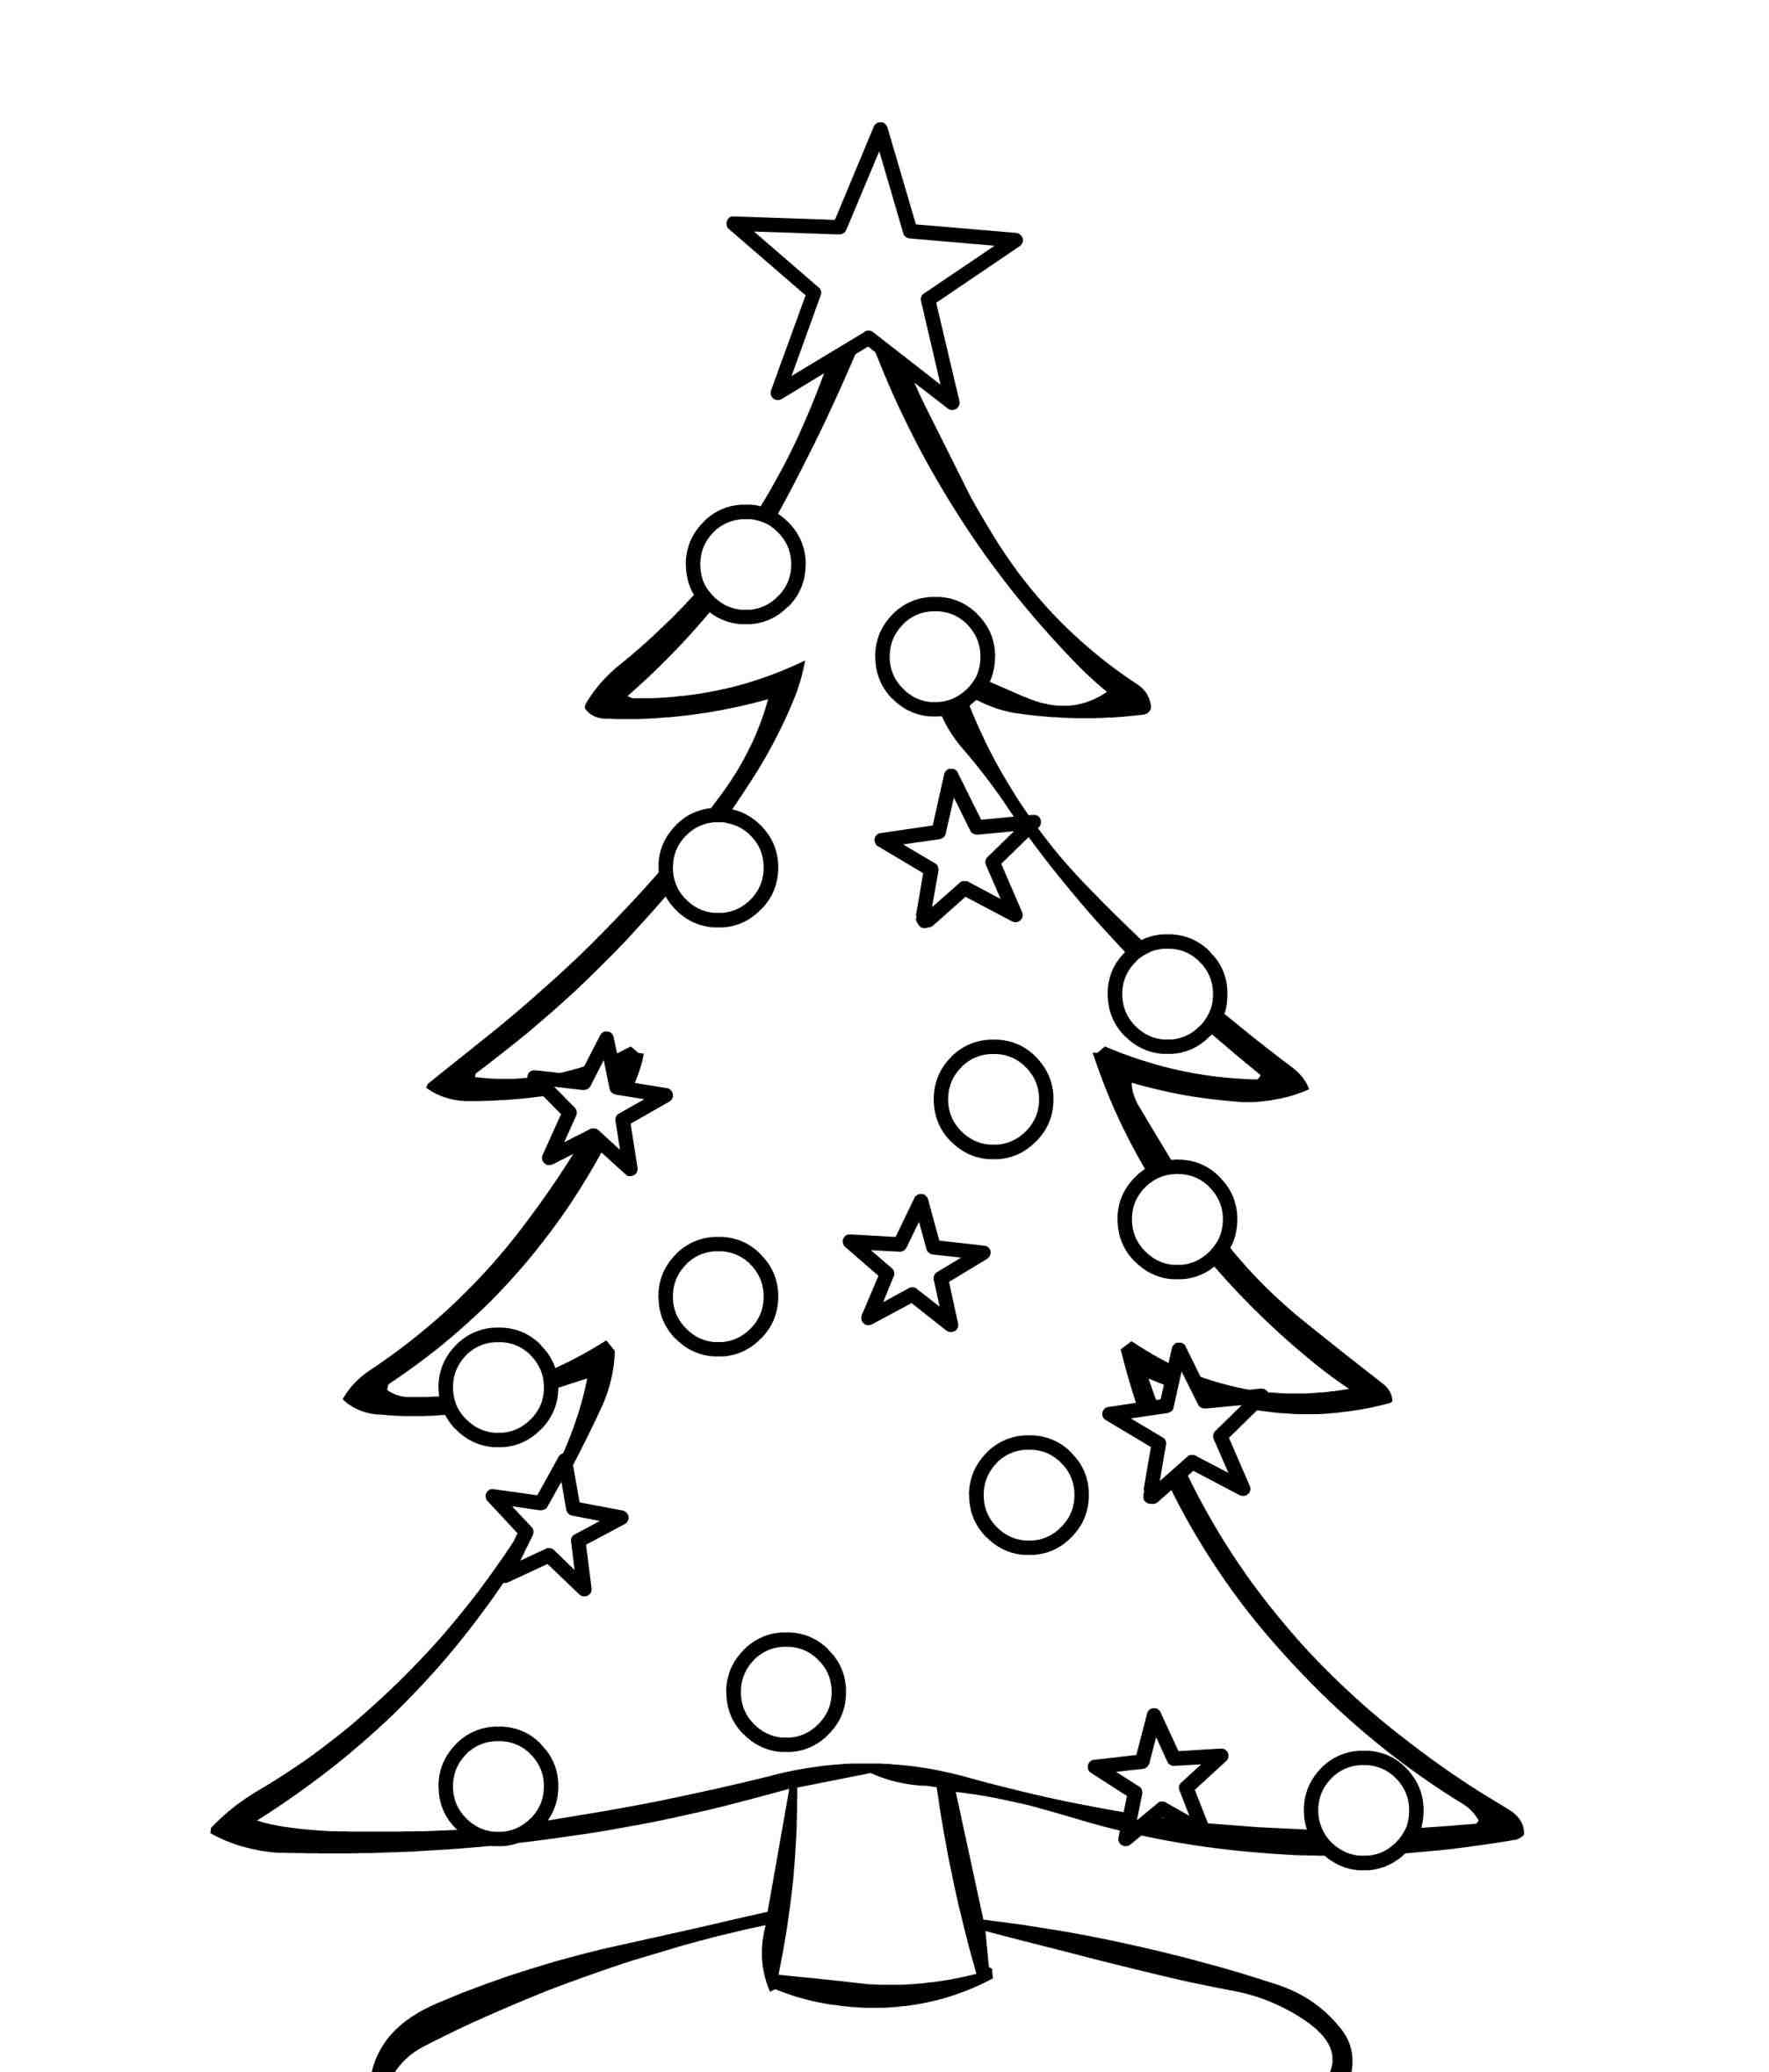 2014x2359 Christmas Tree Drawing For Kids Cheminee.website